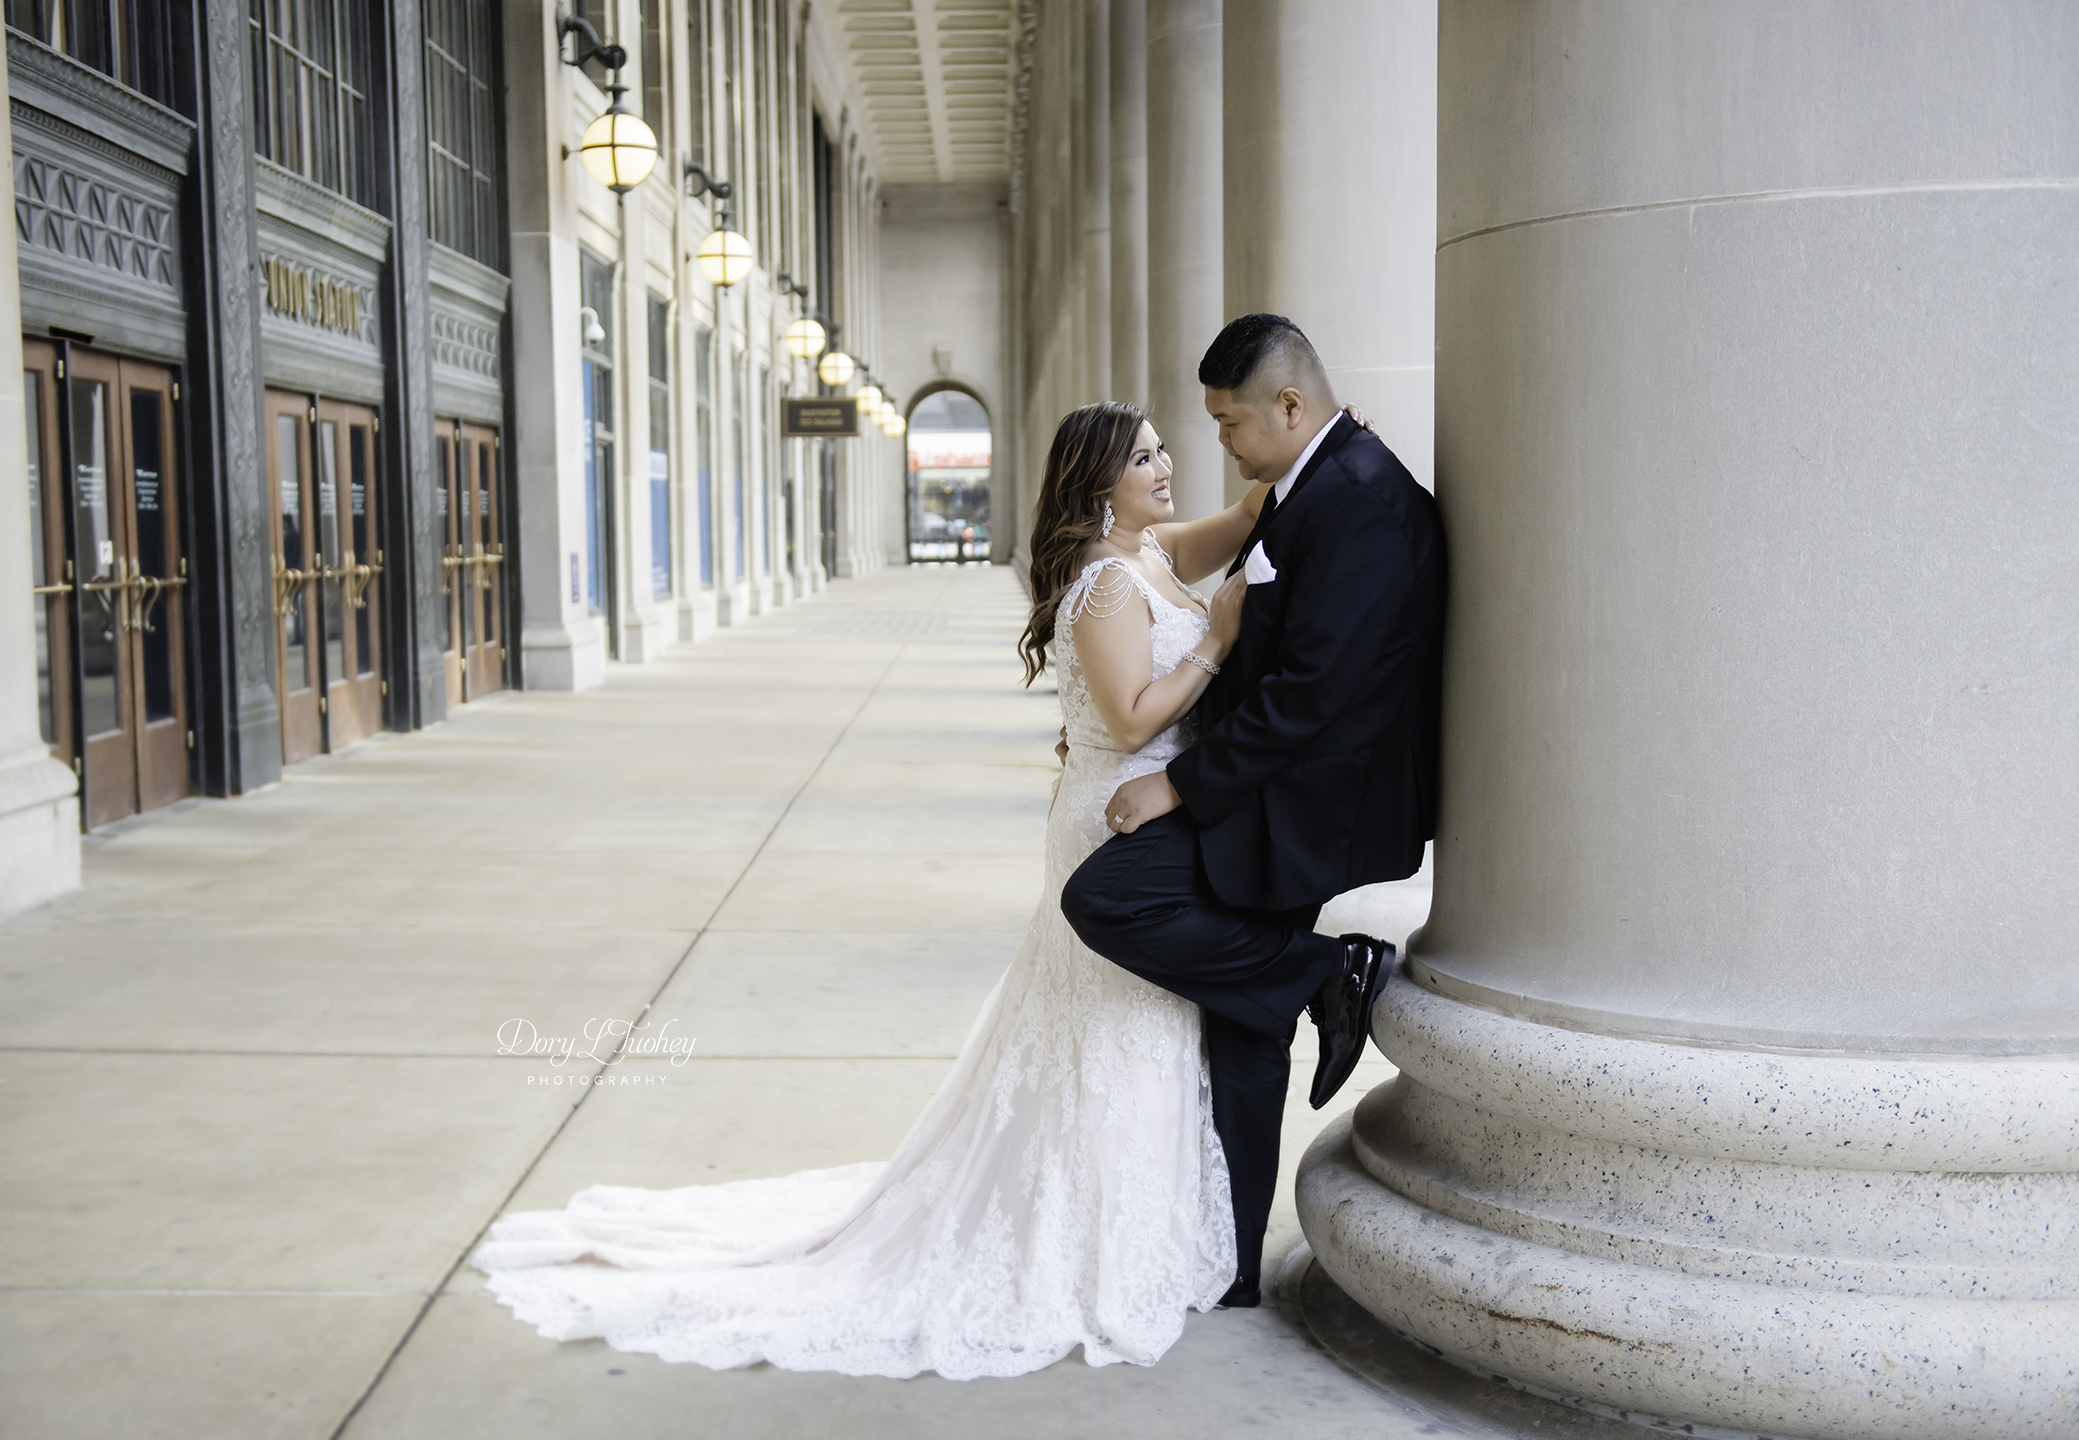 Chicago_wedding_photographer_bride_union_station_laos_thai_dory_01.jpg